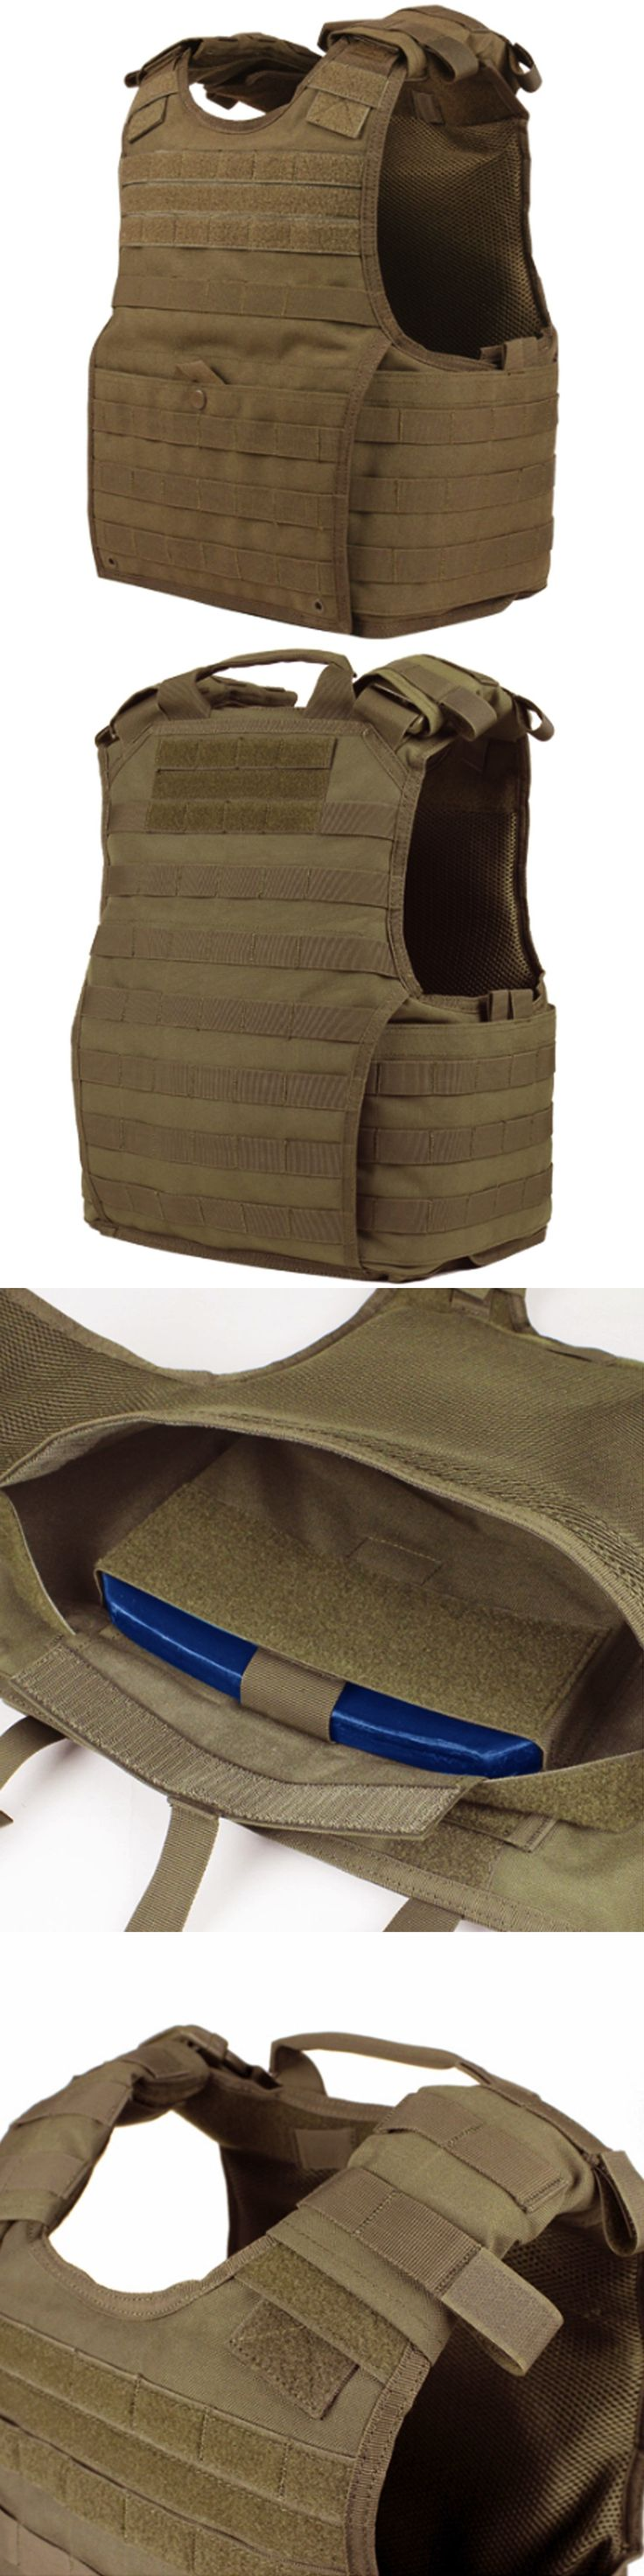 Body Armor and Plates 102537: Condor Xpc Coyote Brown Spear Balc Molle Armor Plate Carrier Tactical Vest S/M -> BUY IT NOW ONLY: $62.86 on eBay!